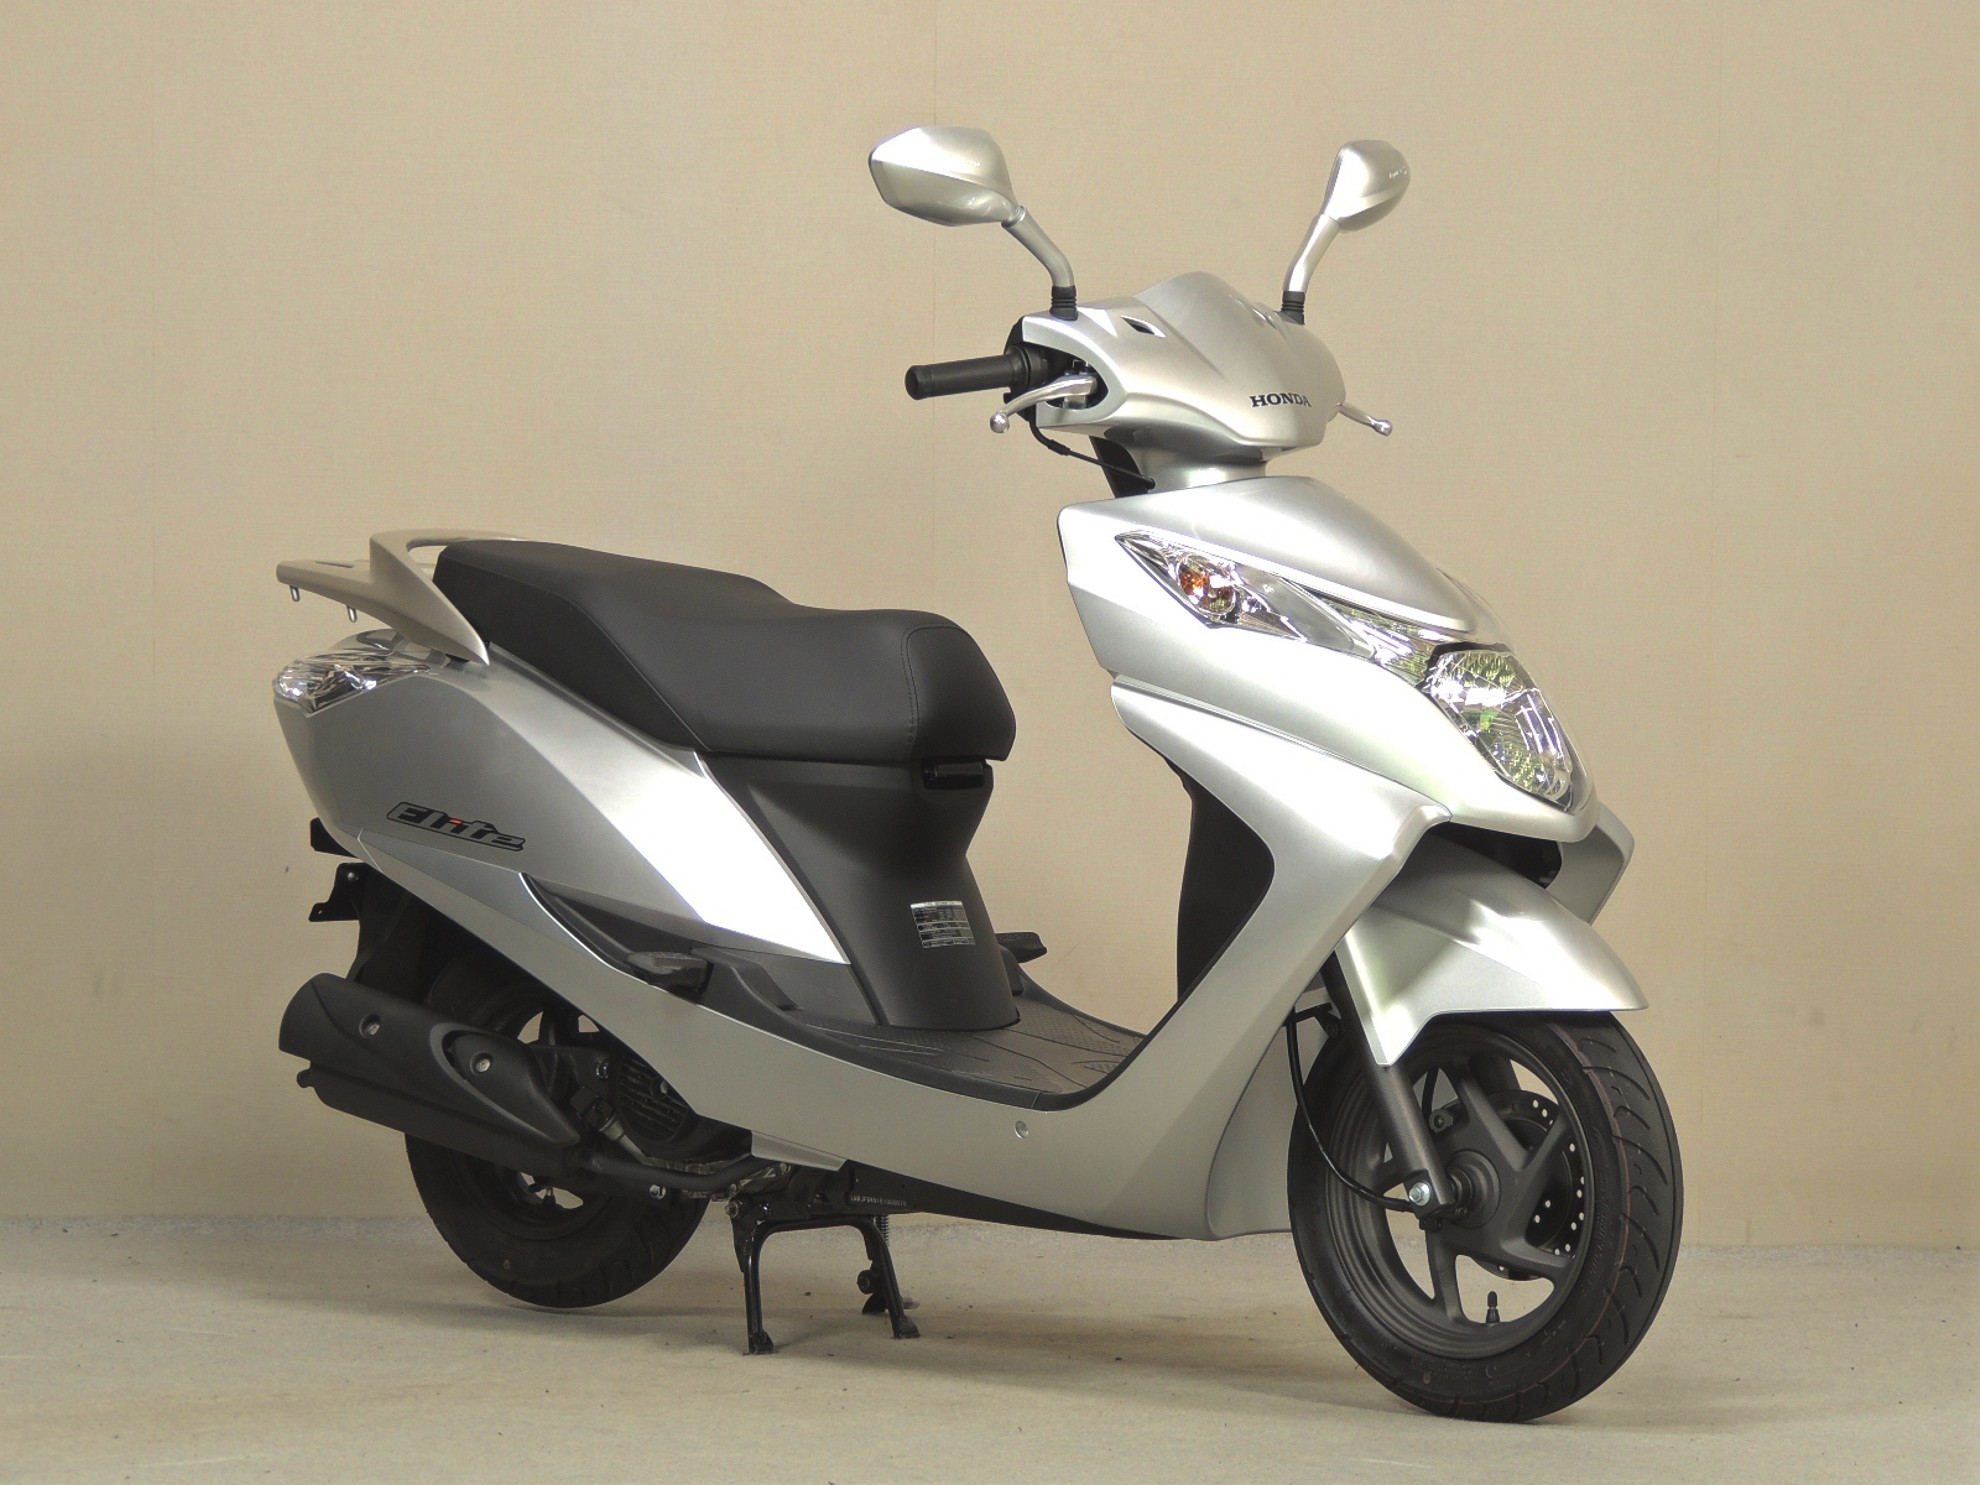 125cc scooter: